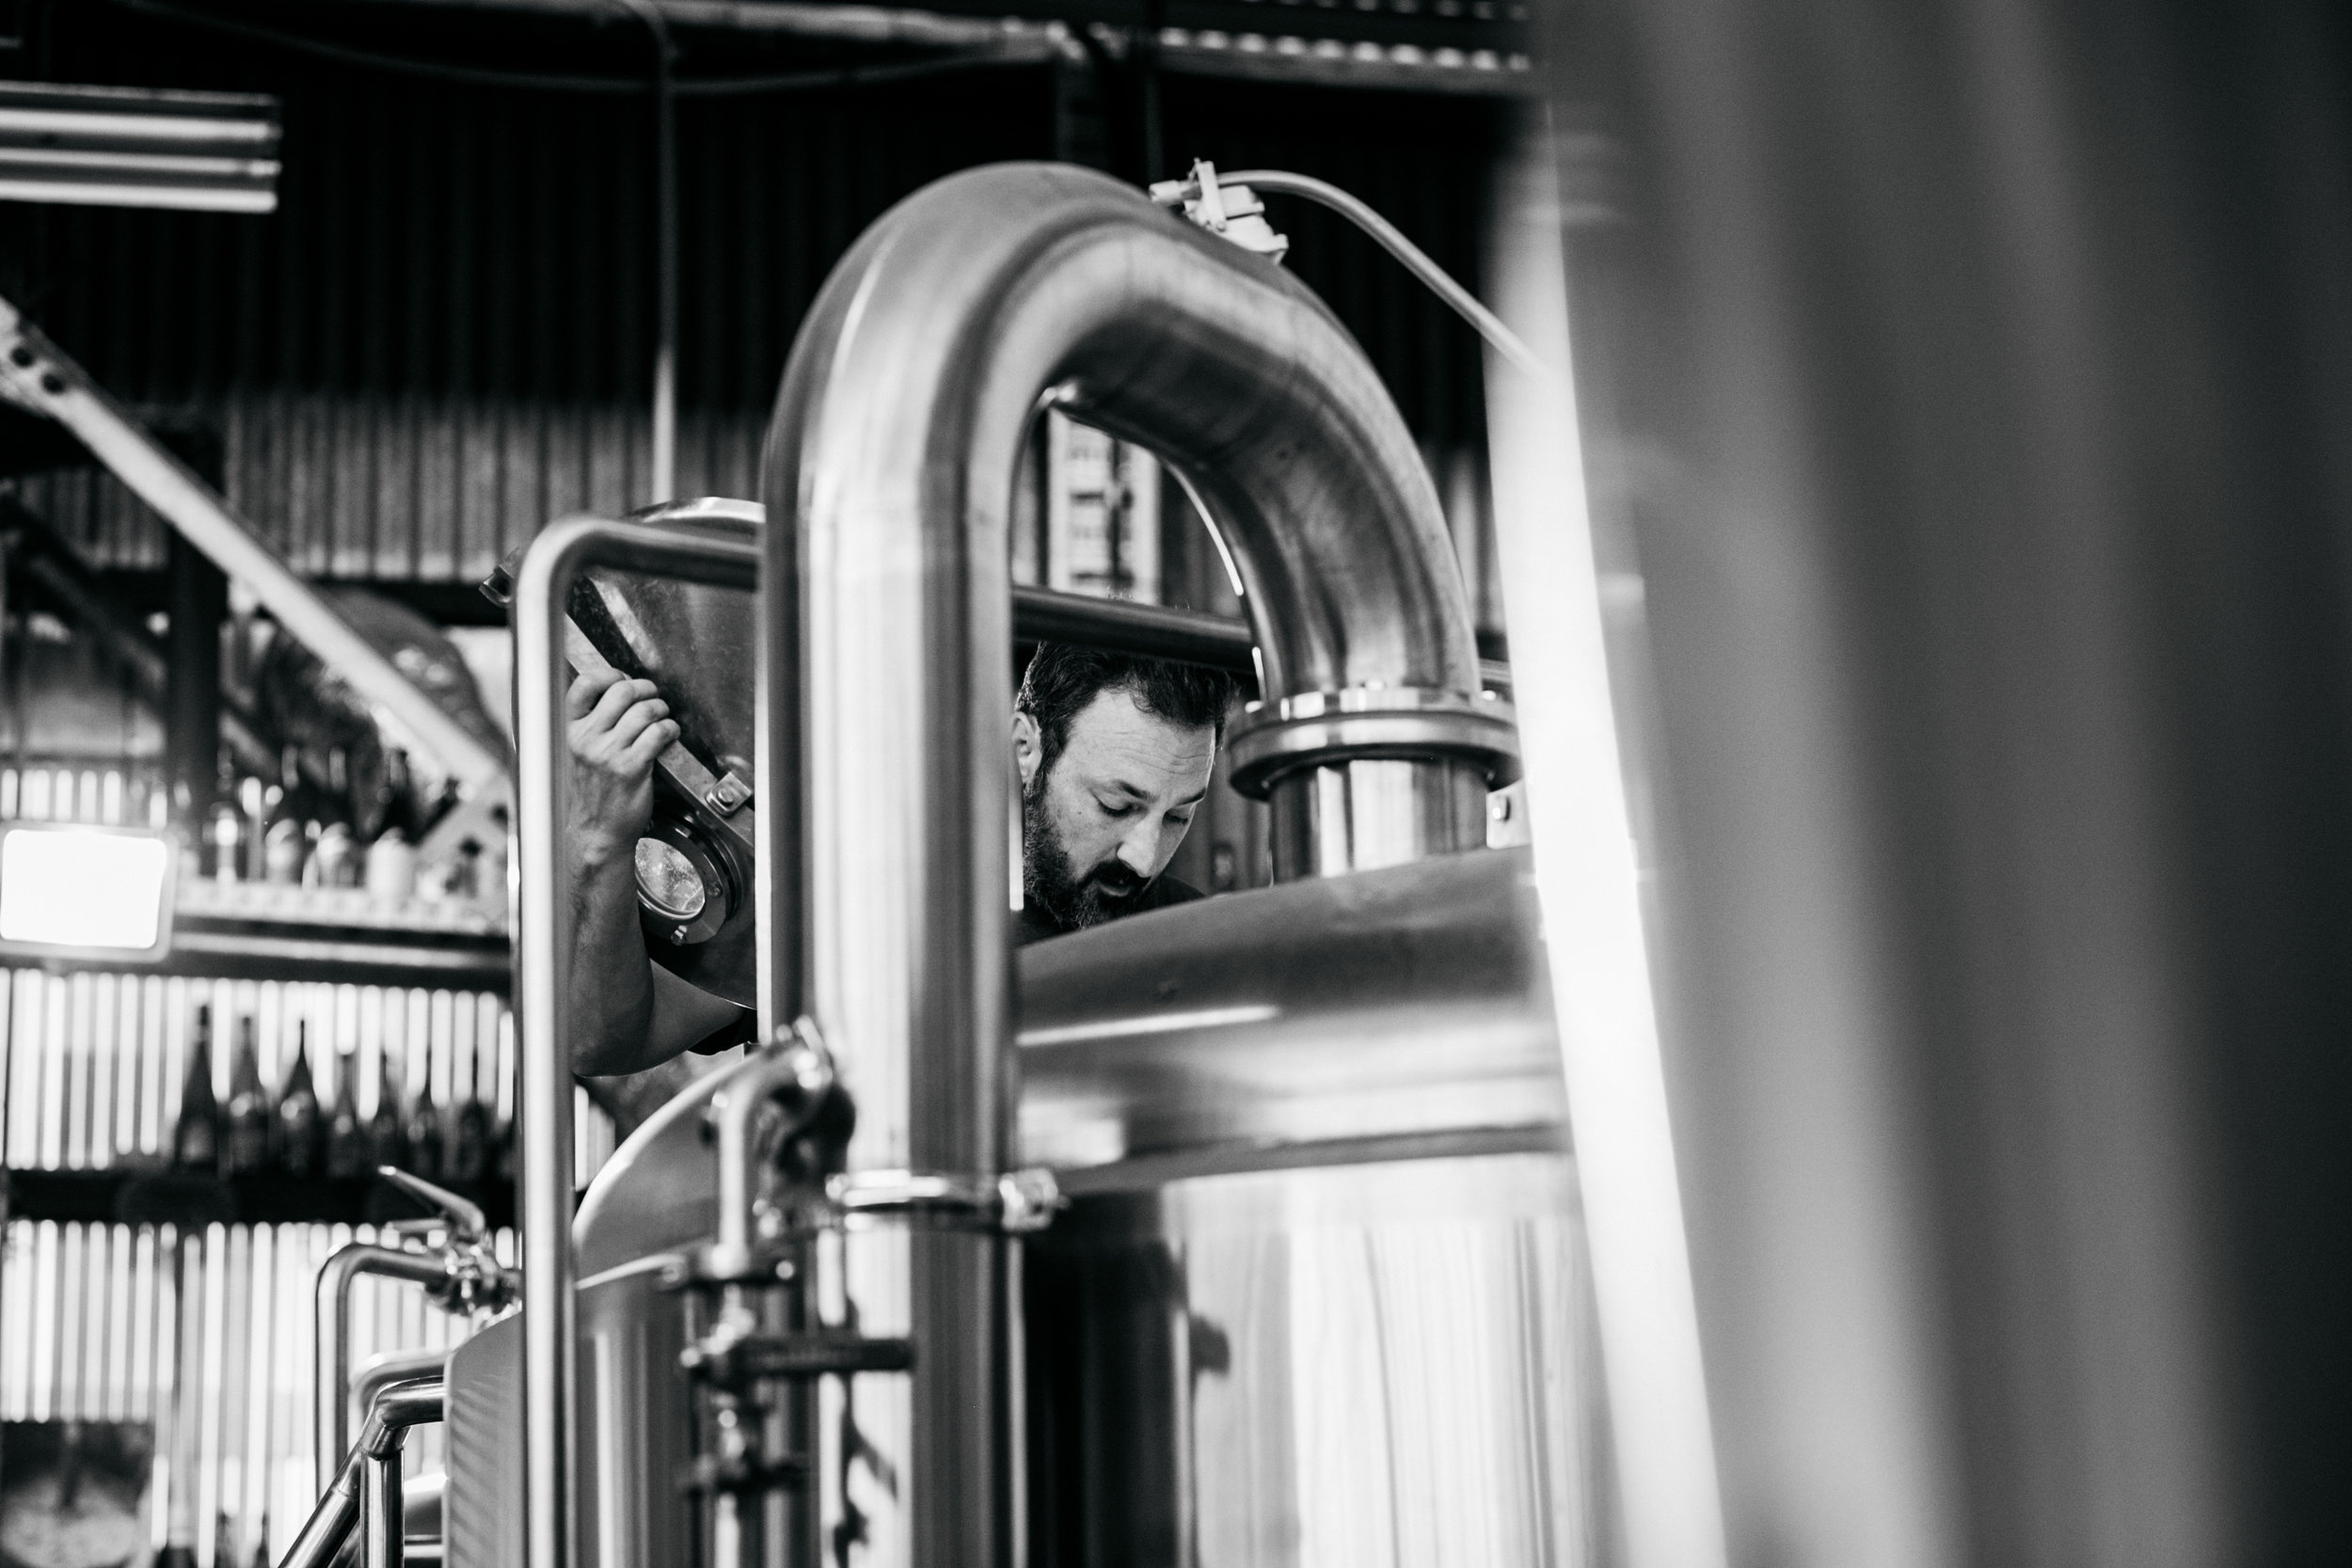 La-Sirene-Brewery-Shoot-March-2018-44.jpg